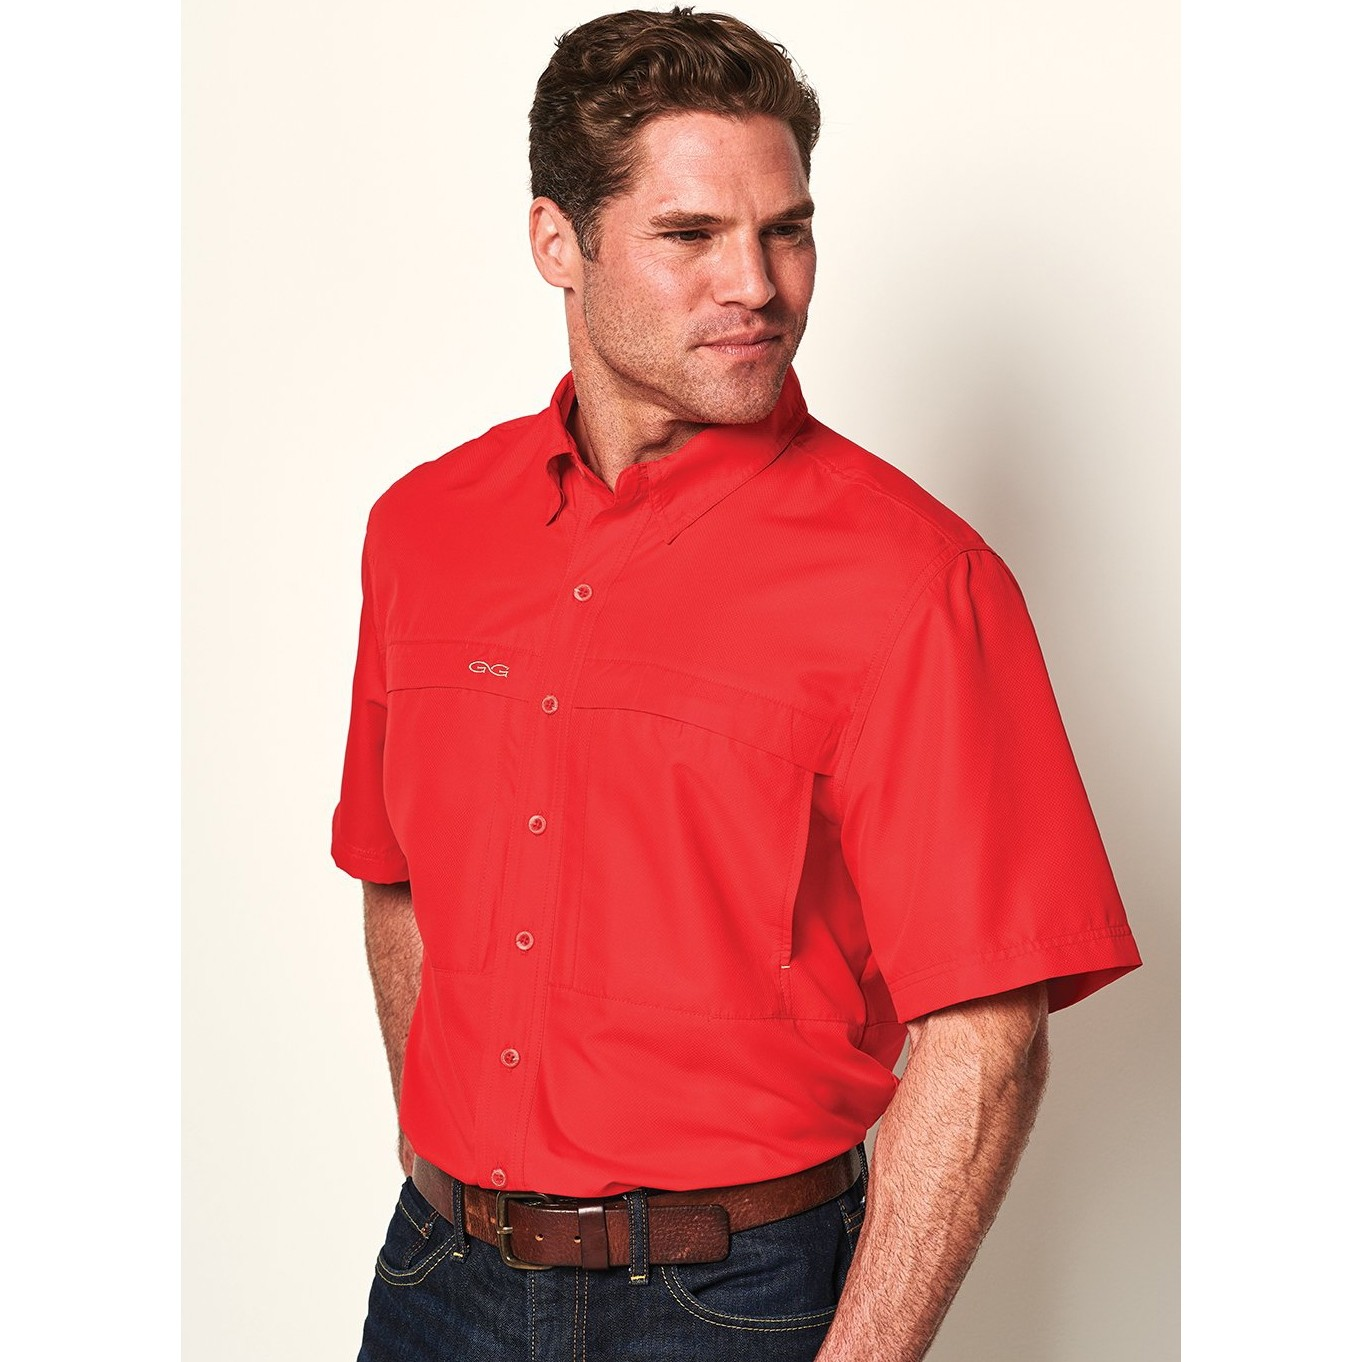 GameGuard Men's Red MicroFiber Shirt